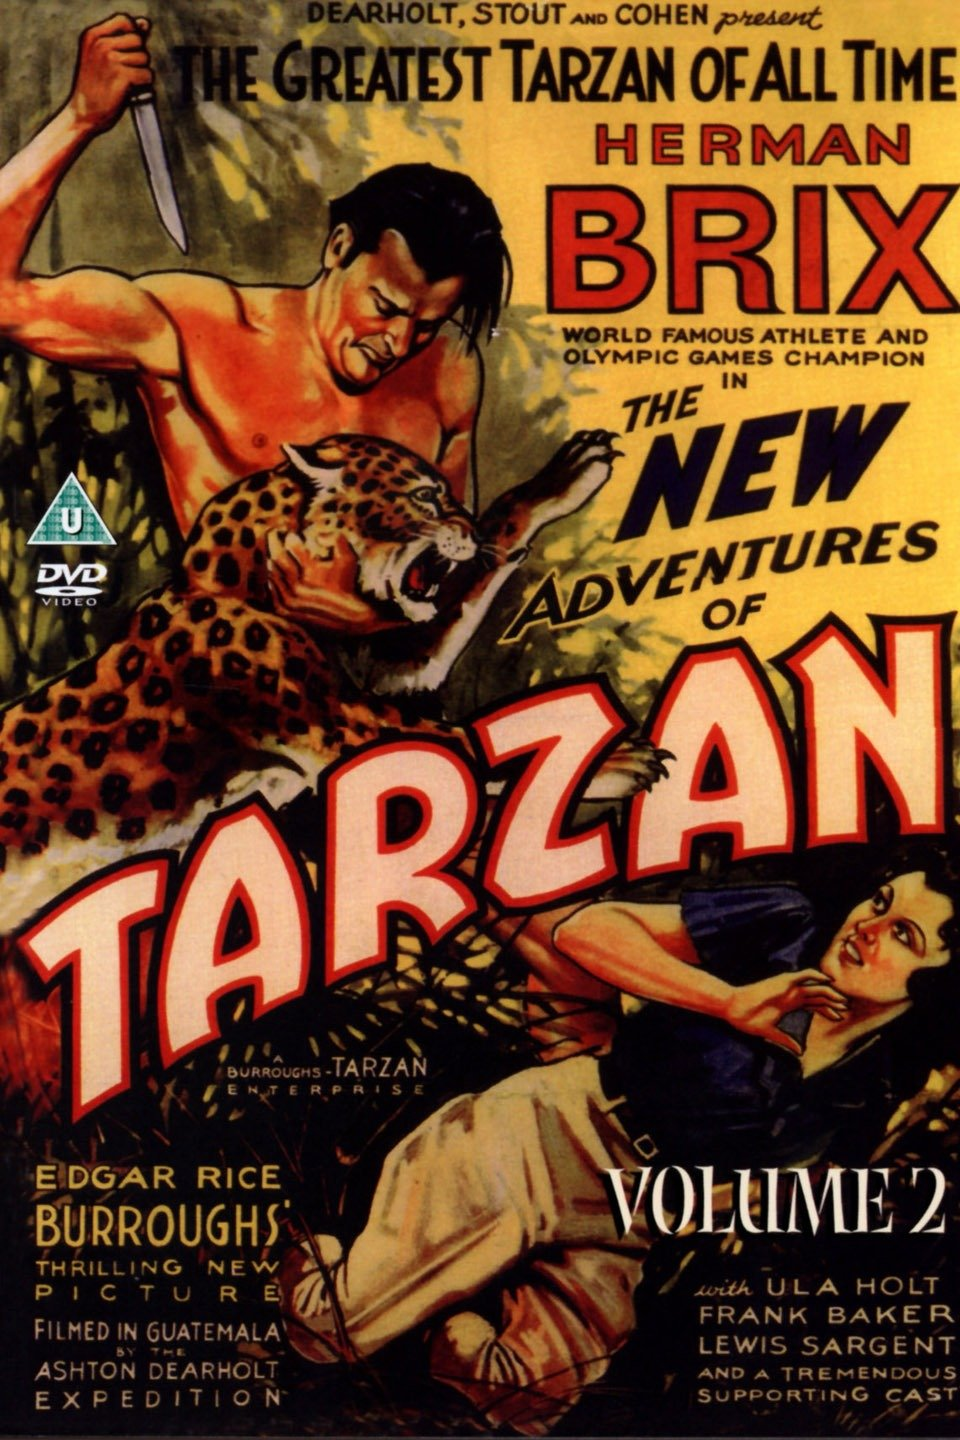 The New Adventures of Tarzan wwwgstaticcomtvthumbdvdboxart3318p3318dv8